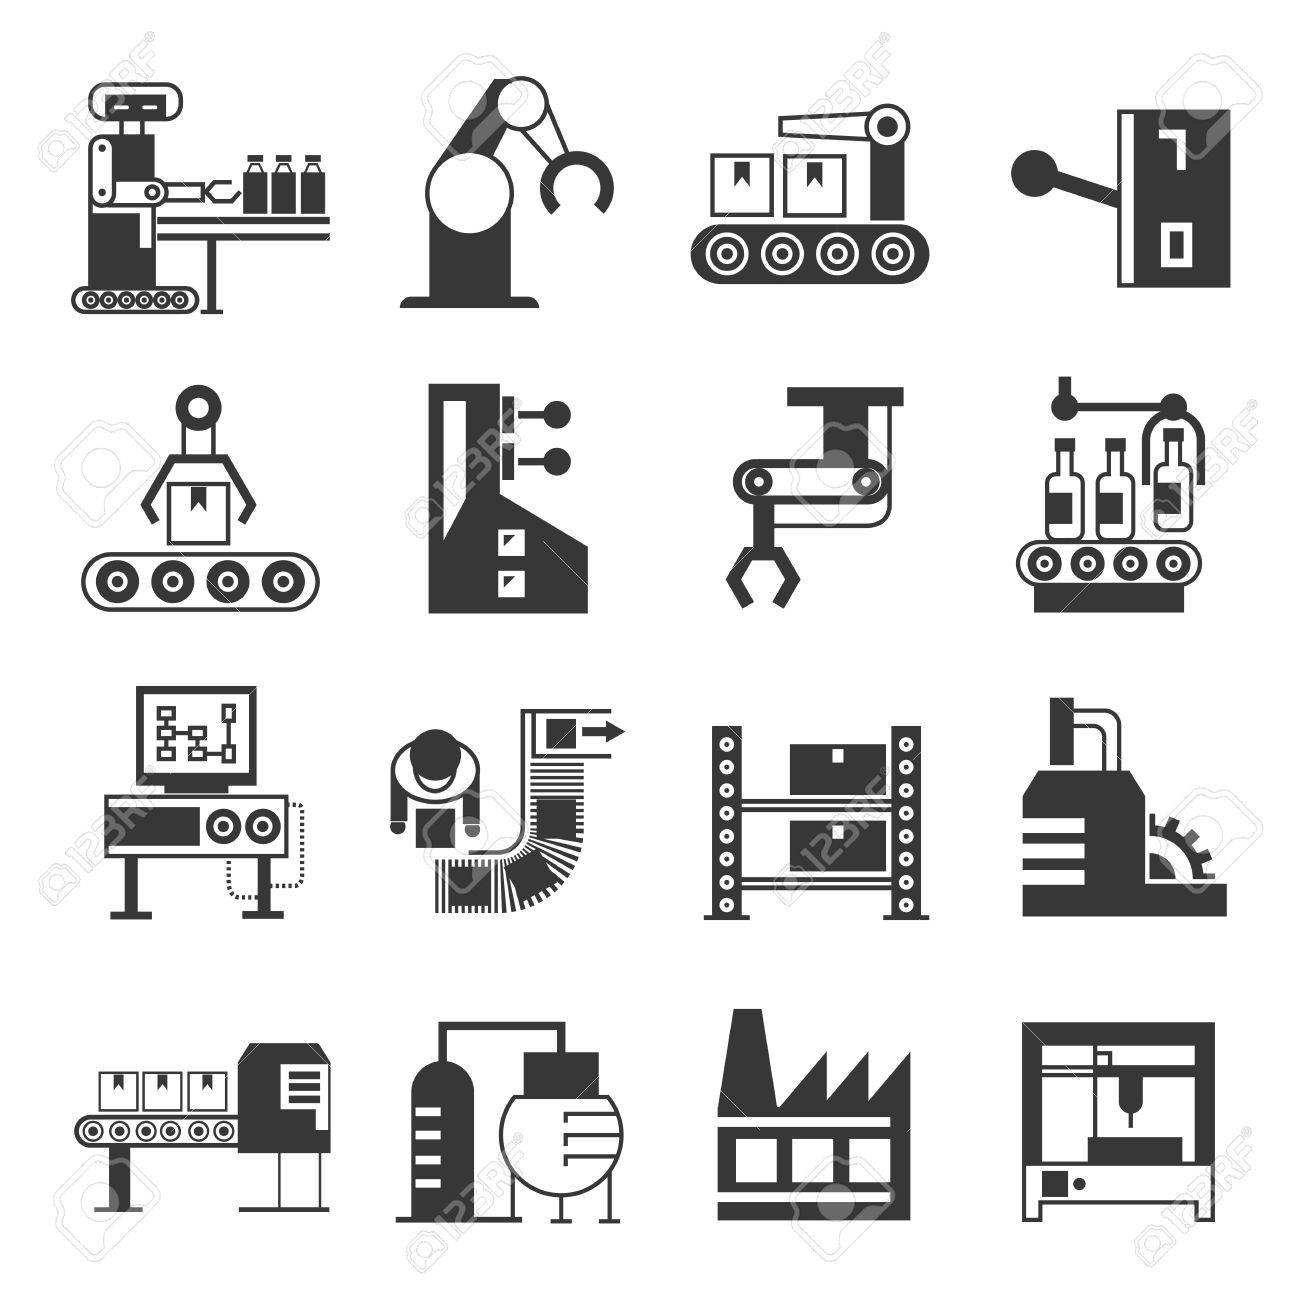 robot and manufacturing icons - 50960441